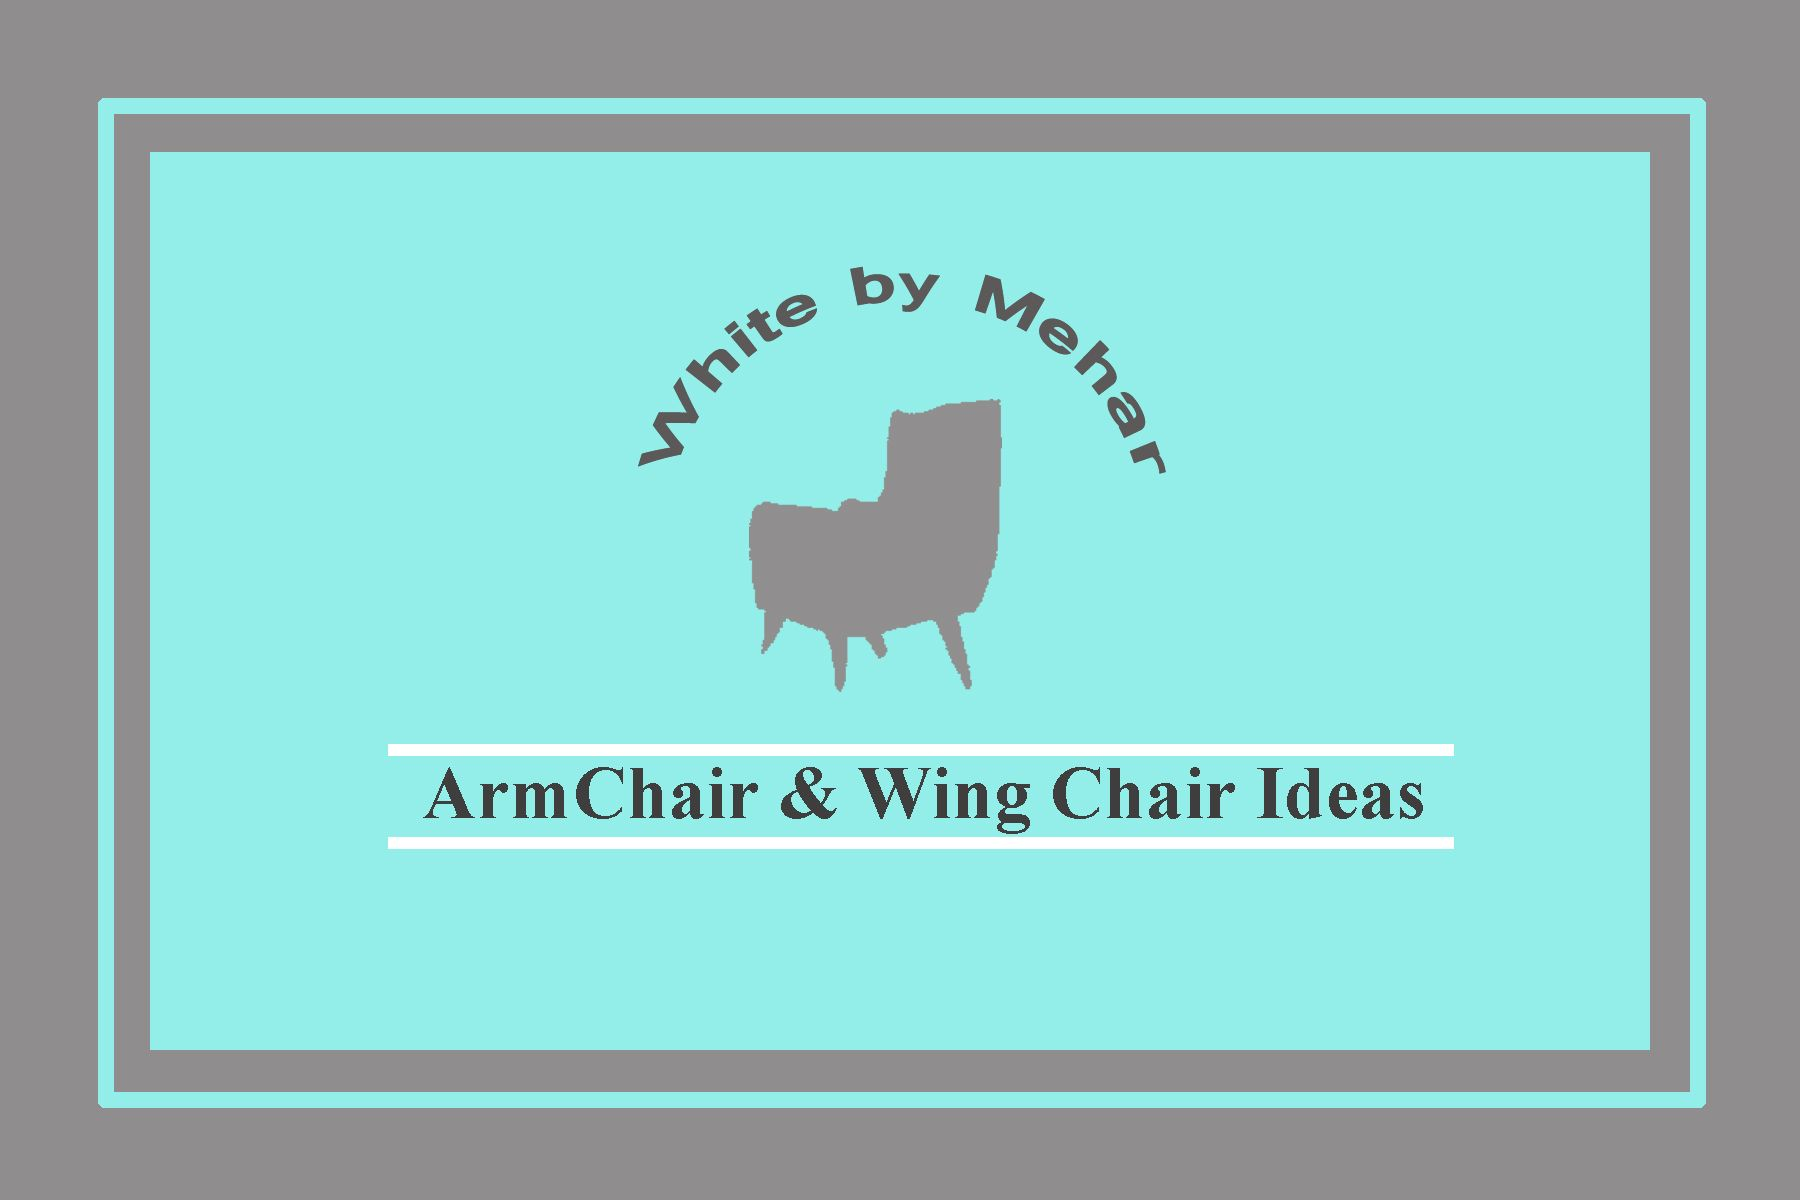 Pin by White By Mehar on Armchairs & Wing Chair/ ideas White by ...